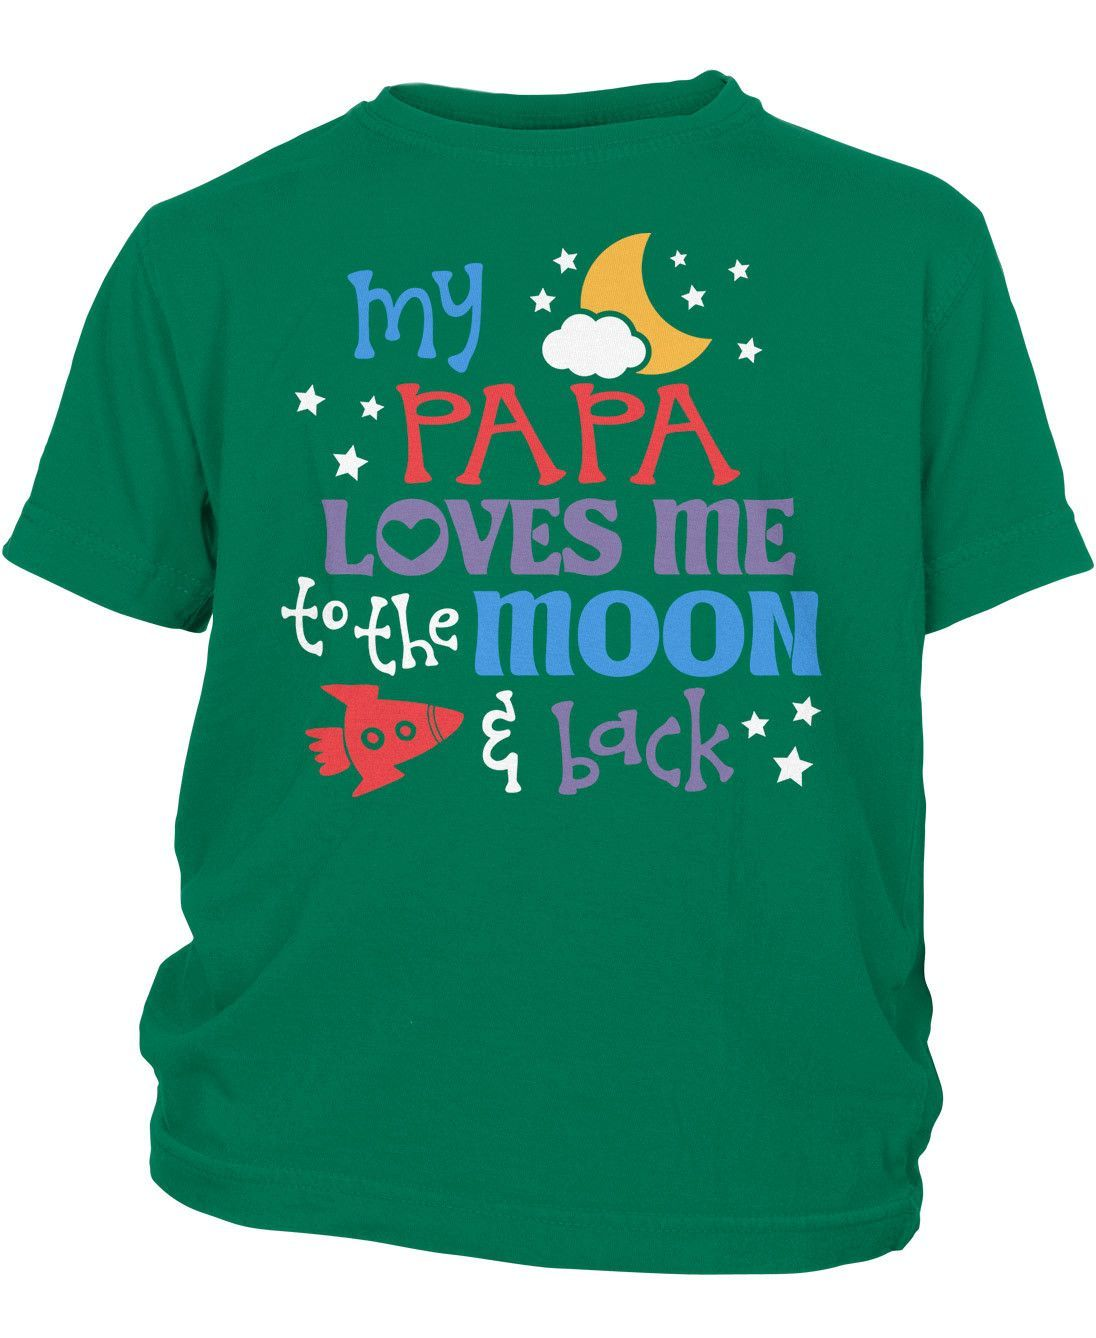 Papa Loves Me to the Moon and Back - Children's T-Shirt